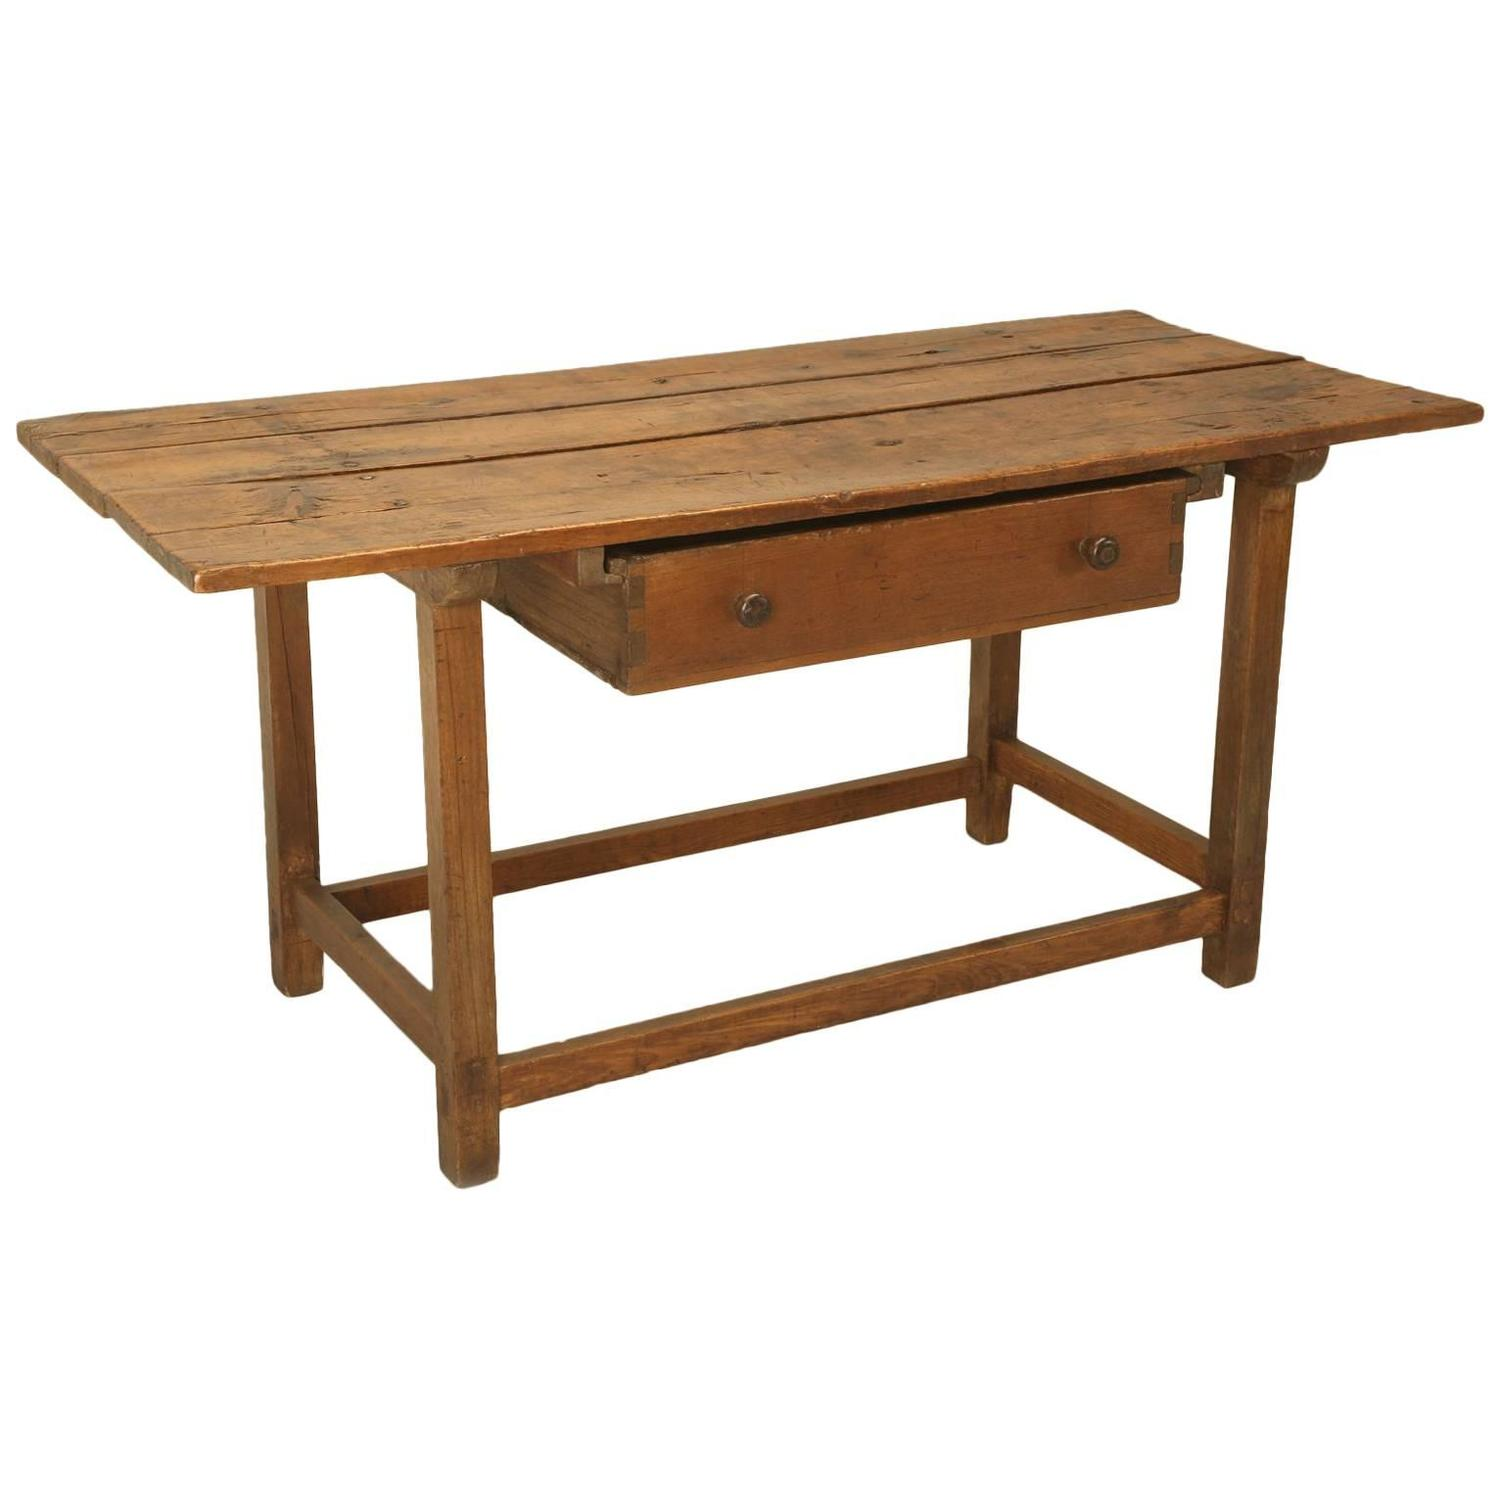 Work Table For Kitchen Antique Vintage Industrial And Work Tables For Sale In Chicago